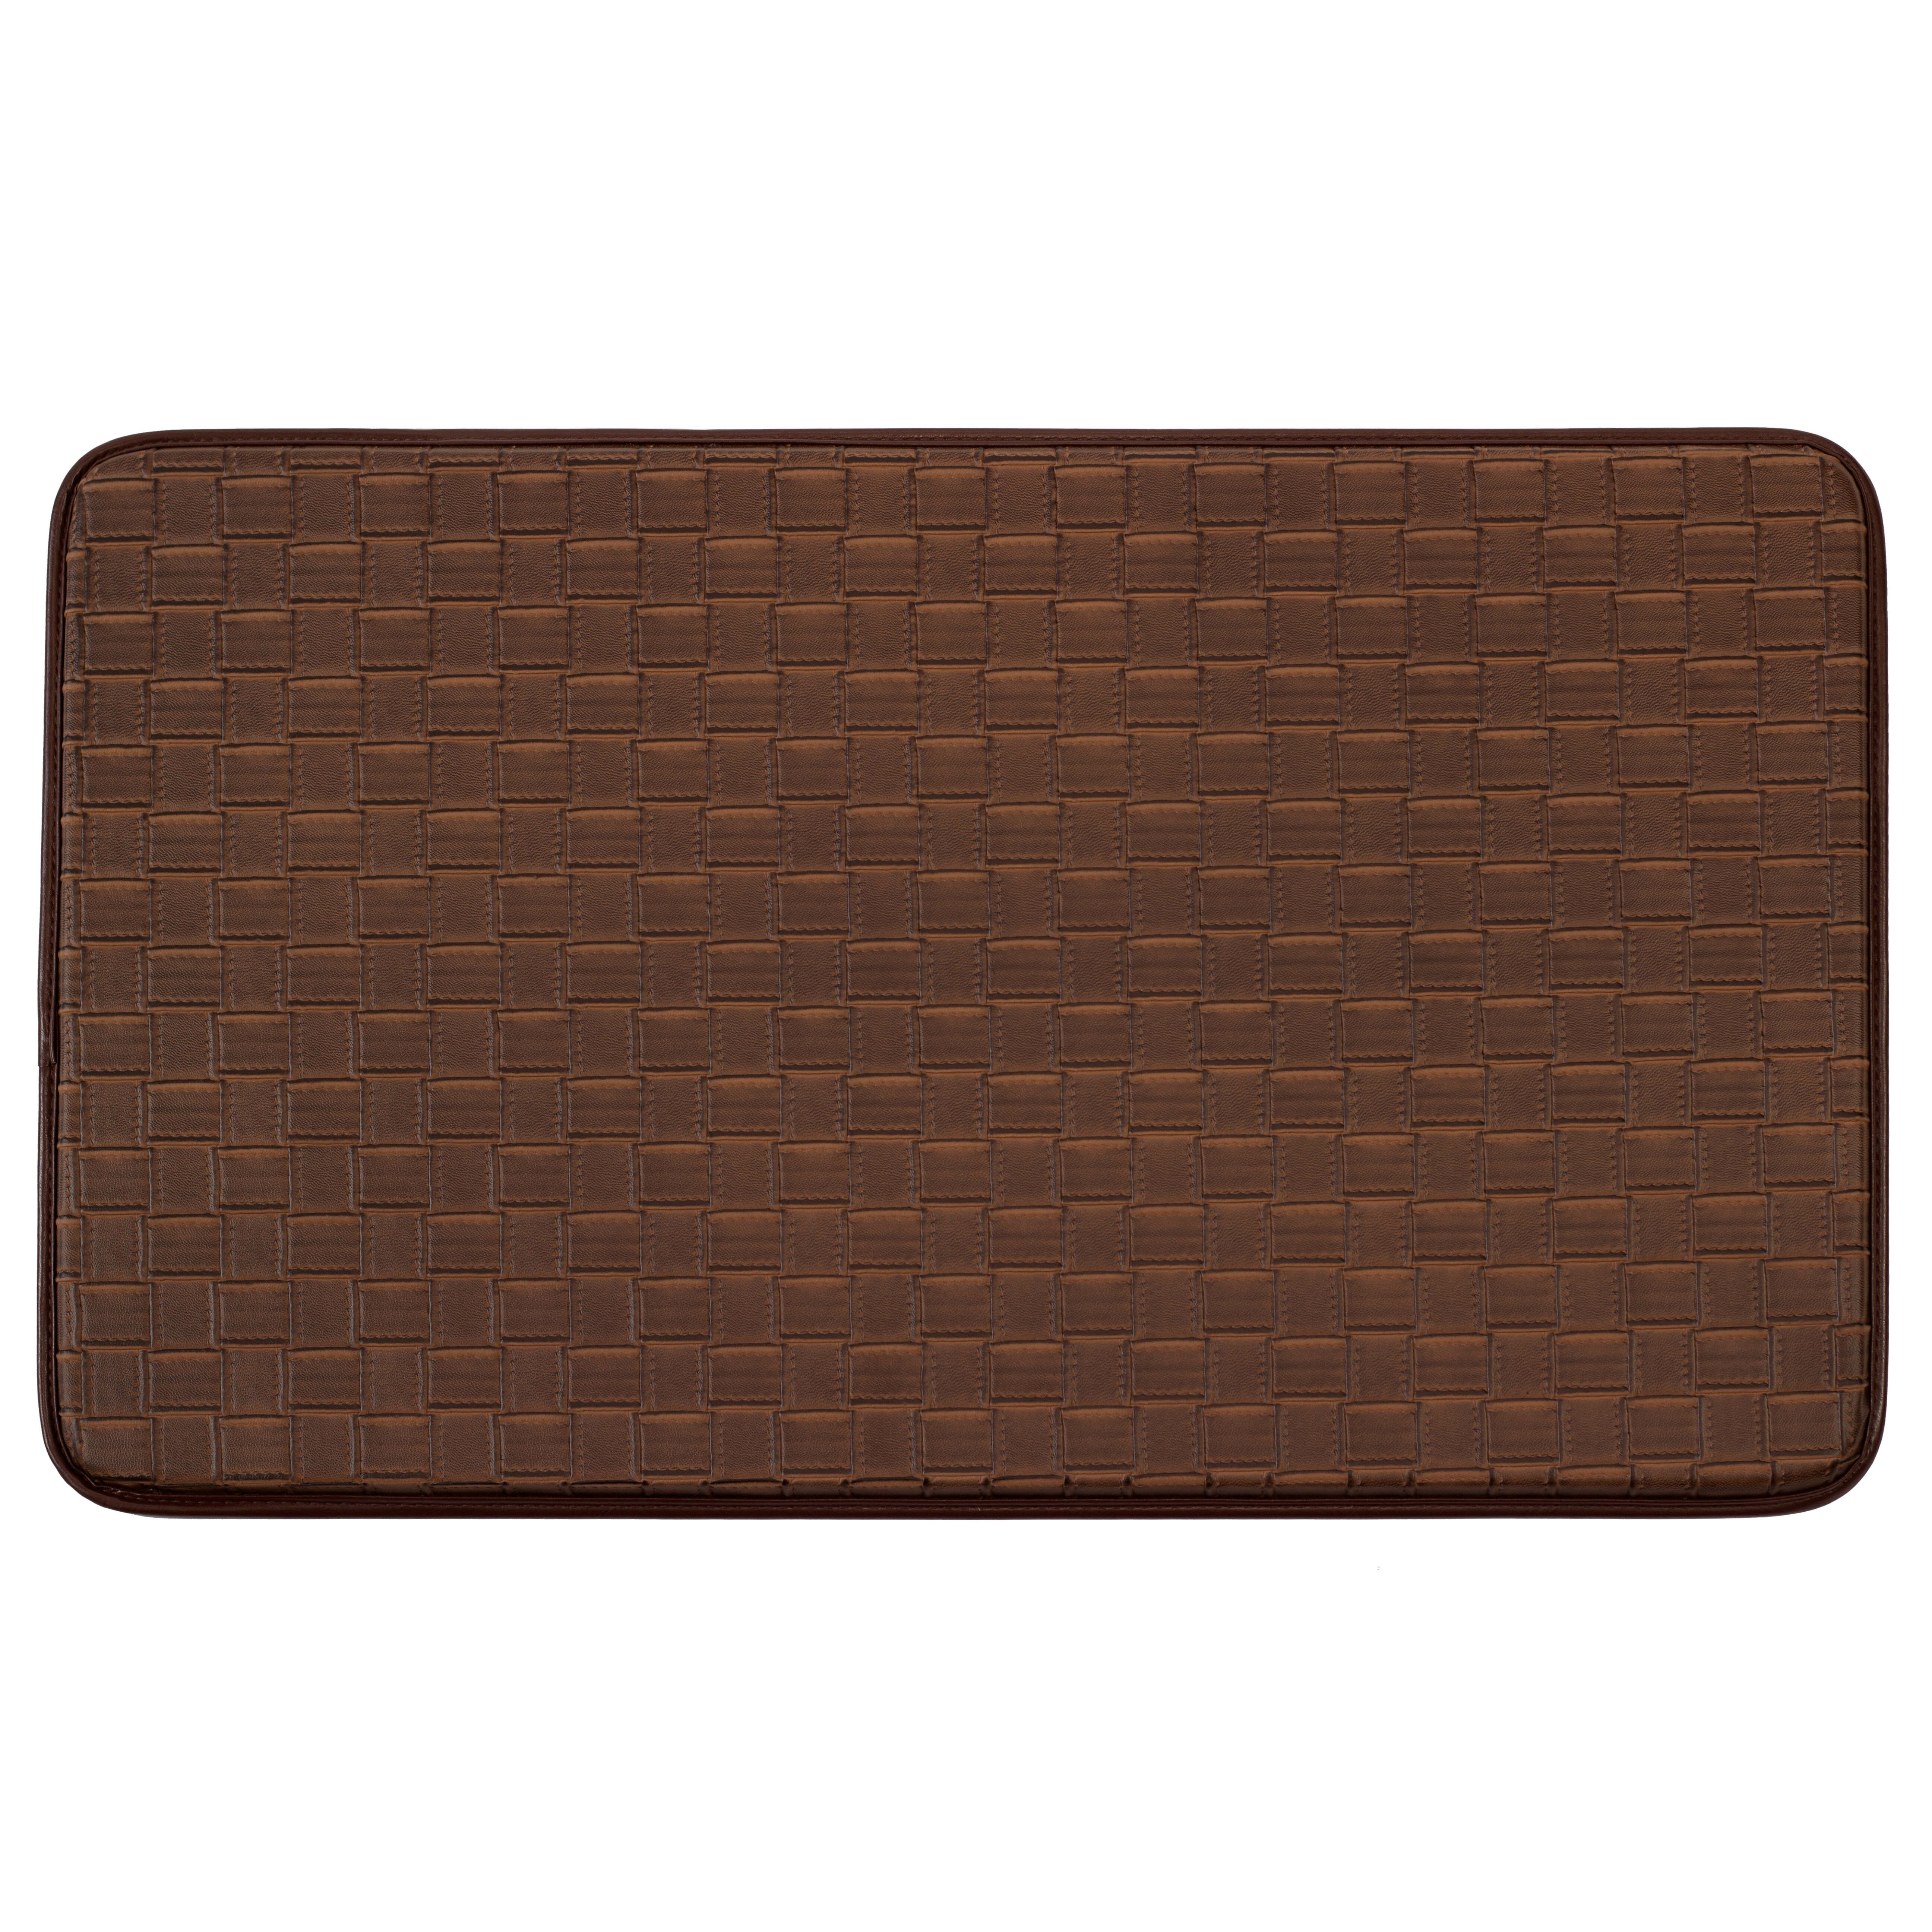 kitchen door mats c a~ cushioned kitchen floor mats Anti Fatigue Faux Leather Kitchen Mat